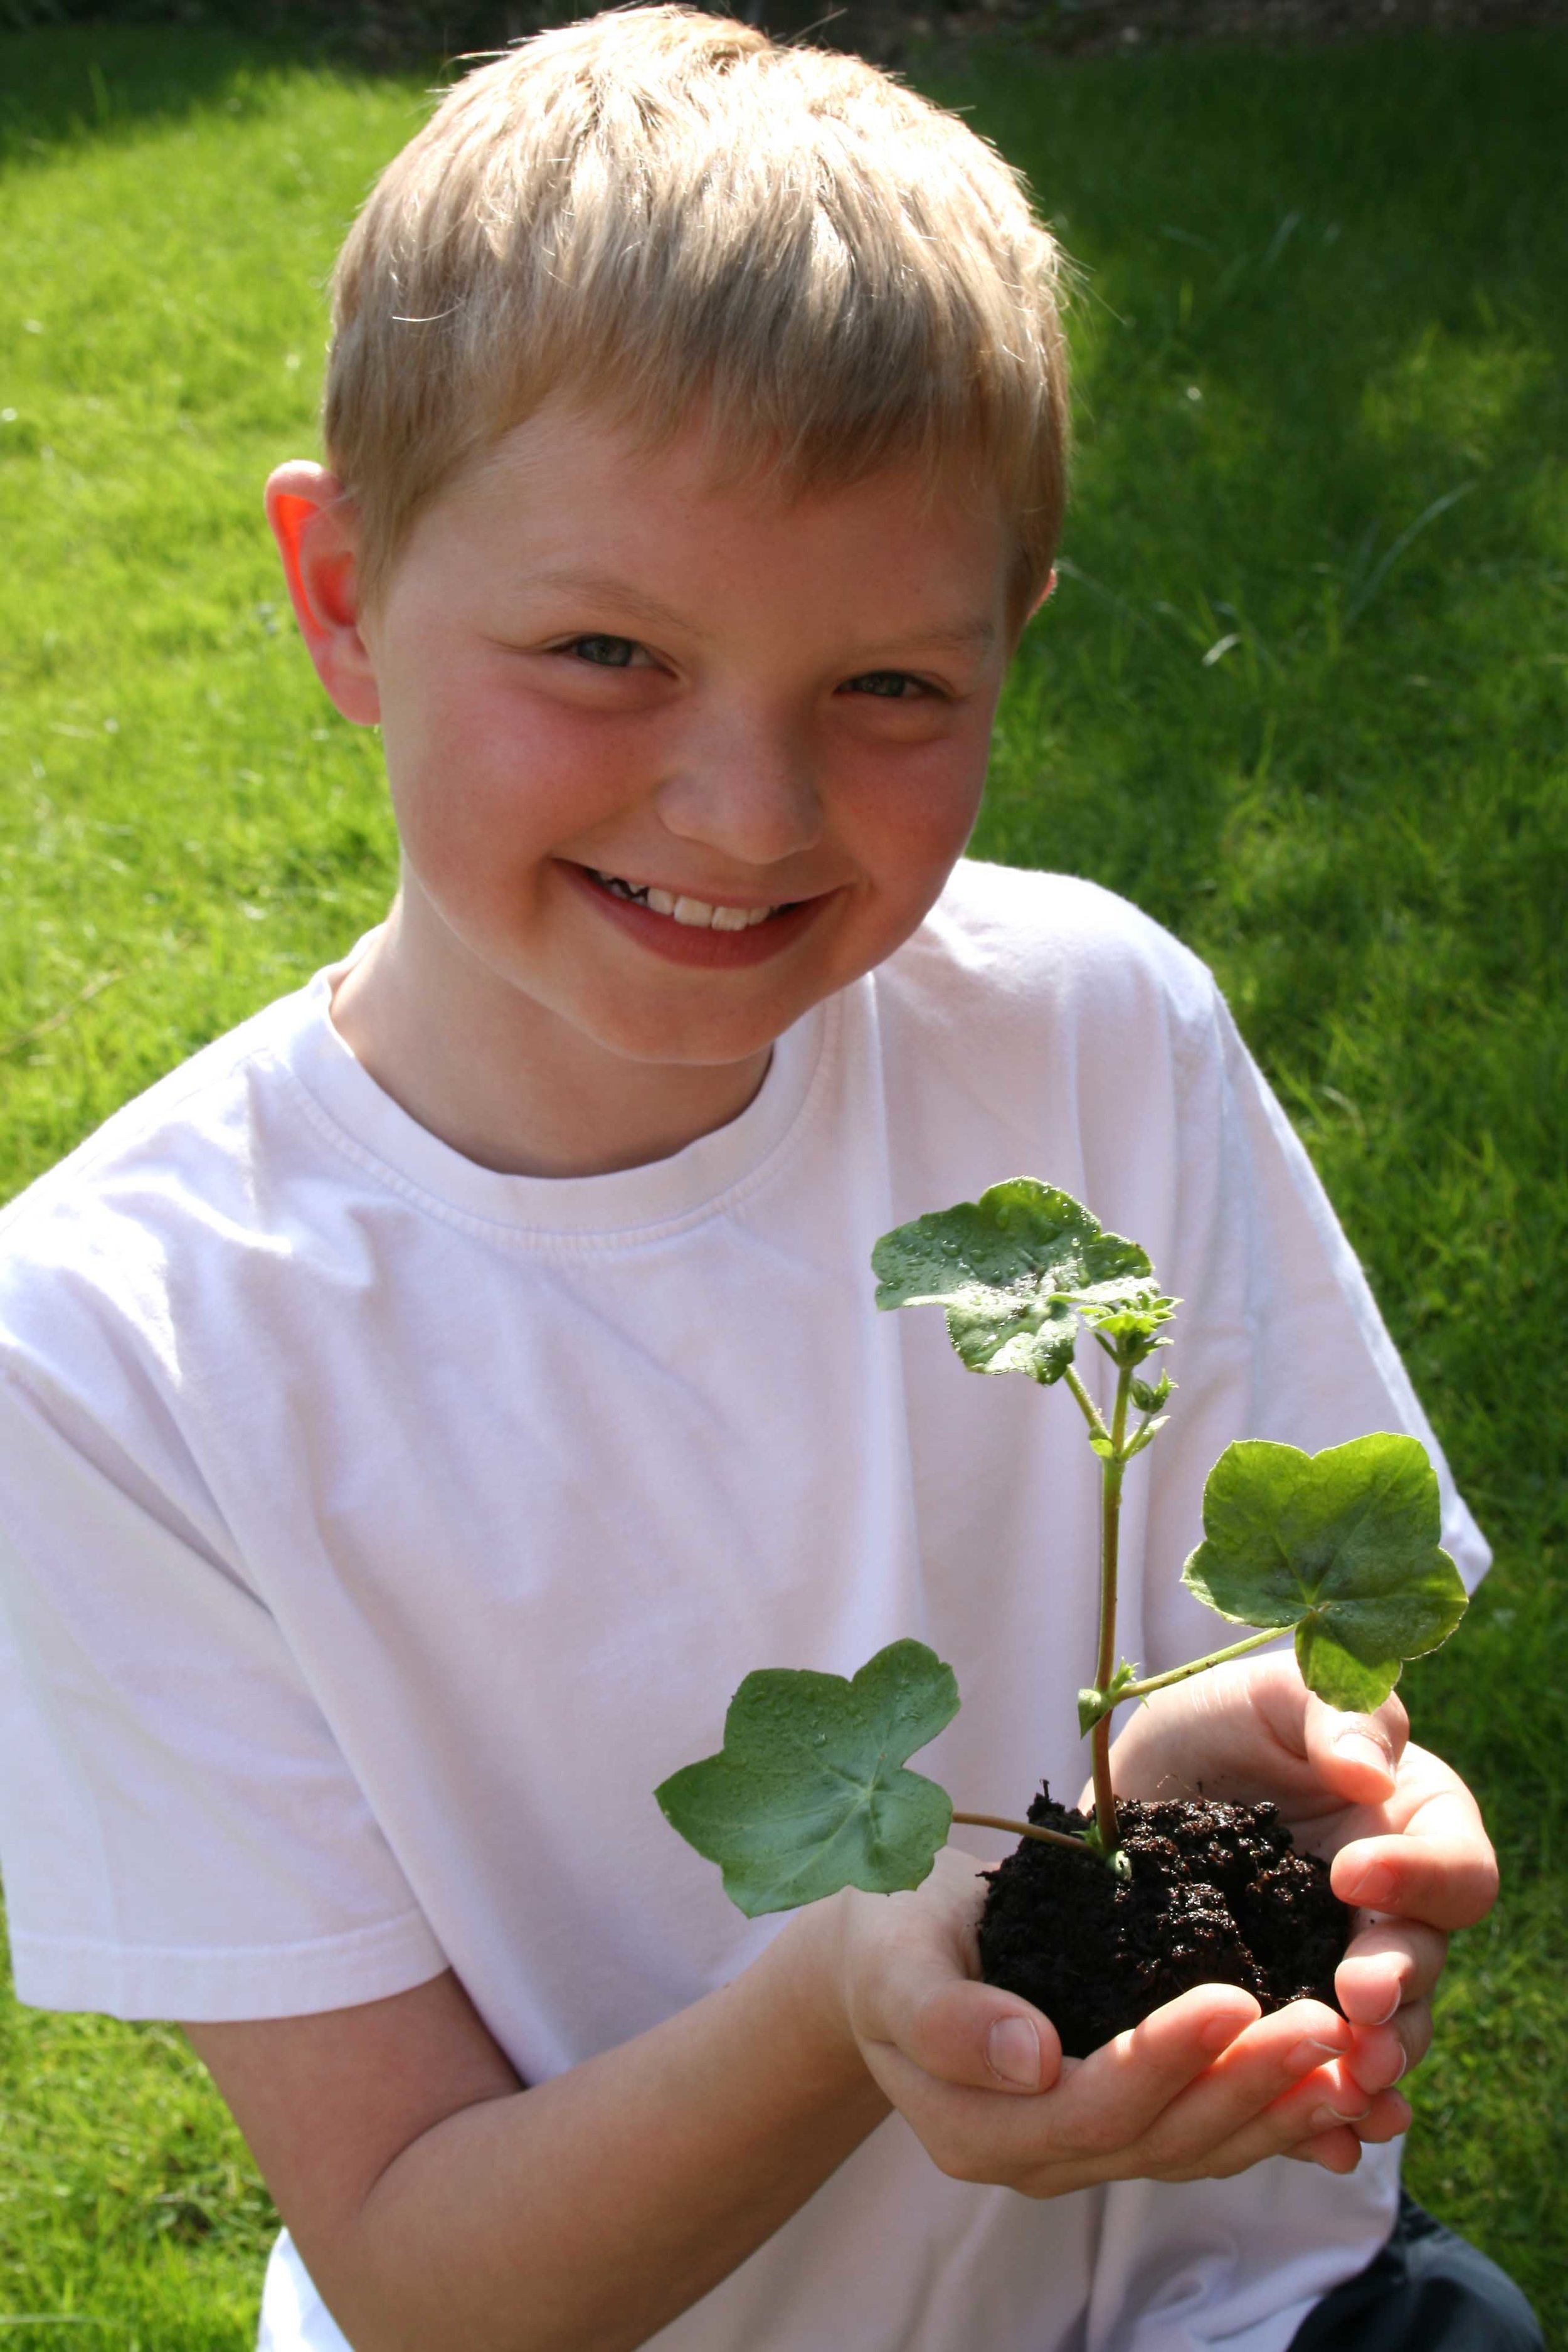 Growing food and caring for plants te